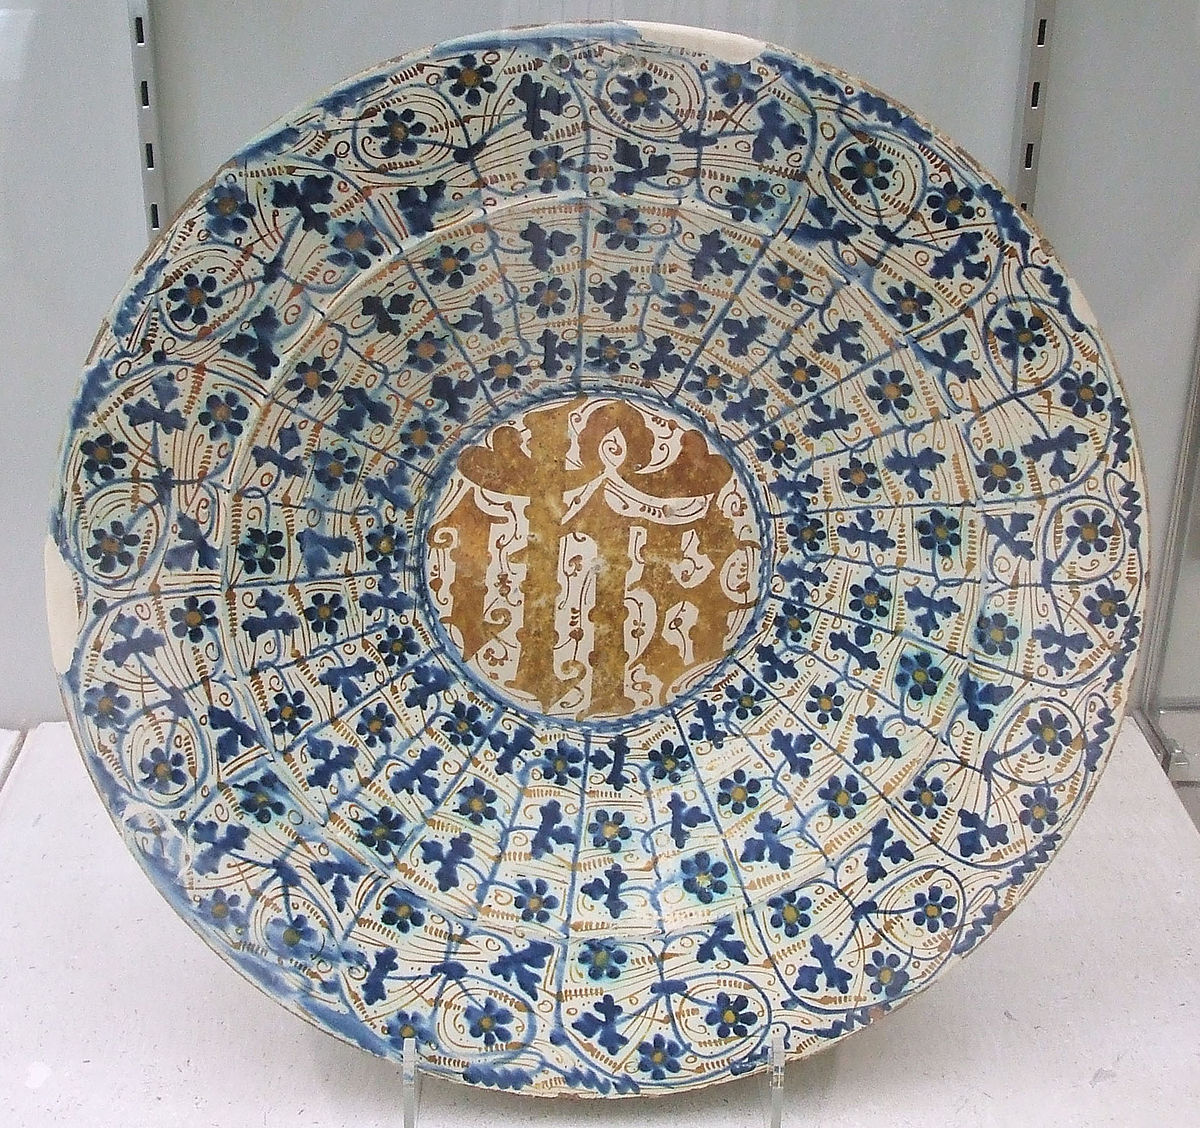 Hispano Moresque Ware Wikipedia